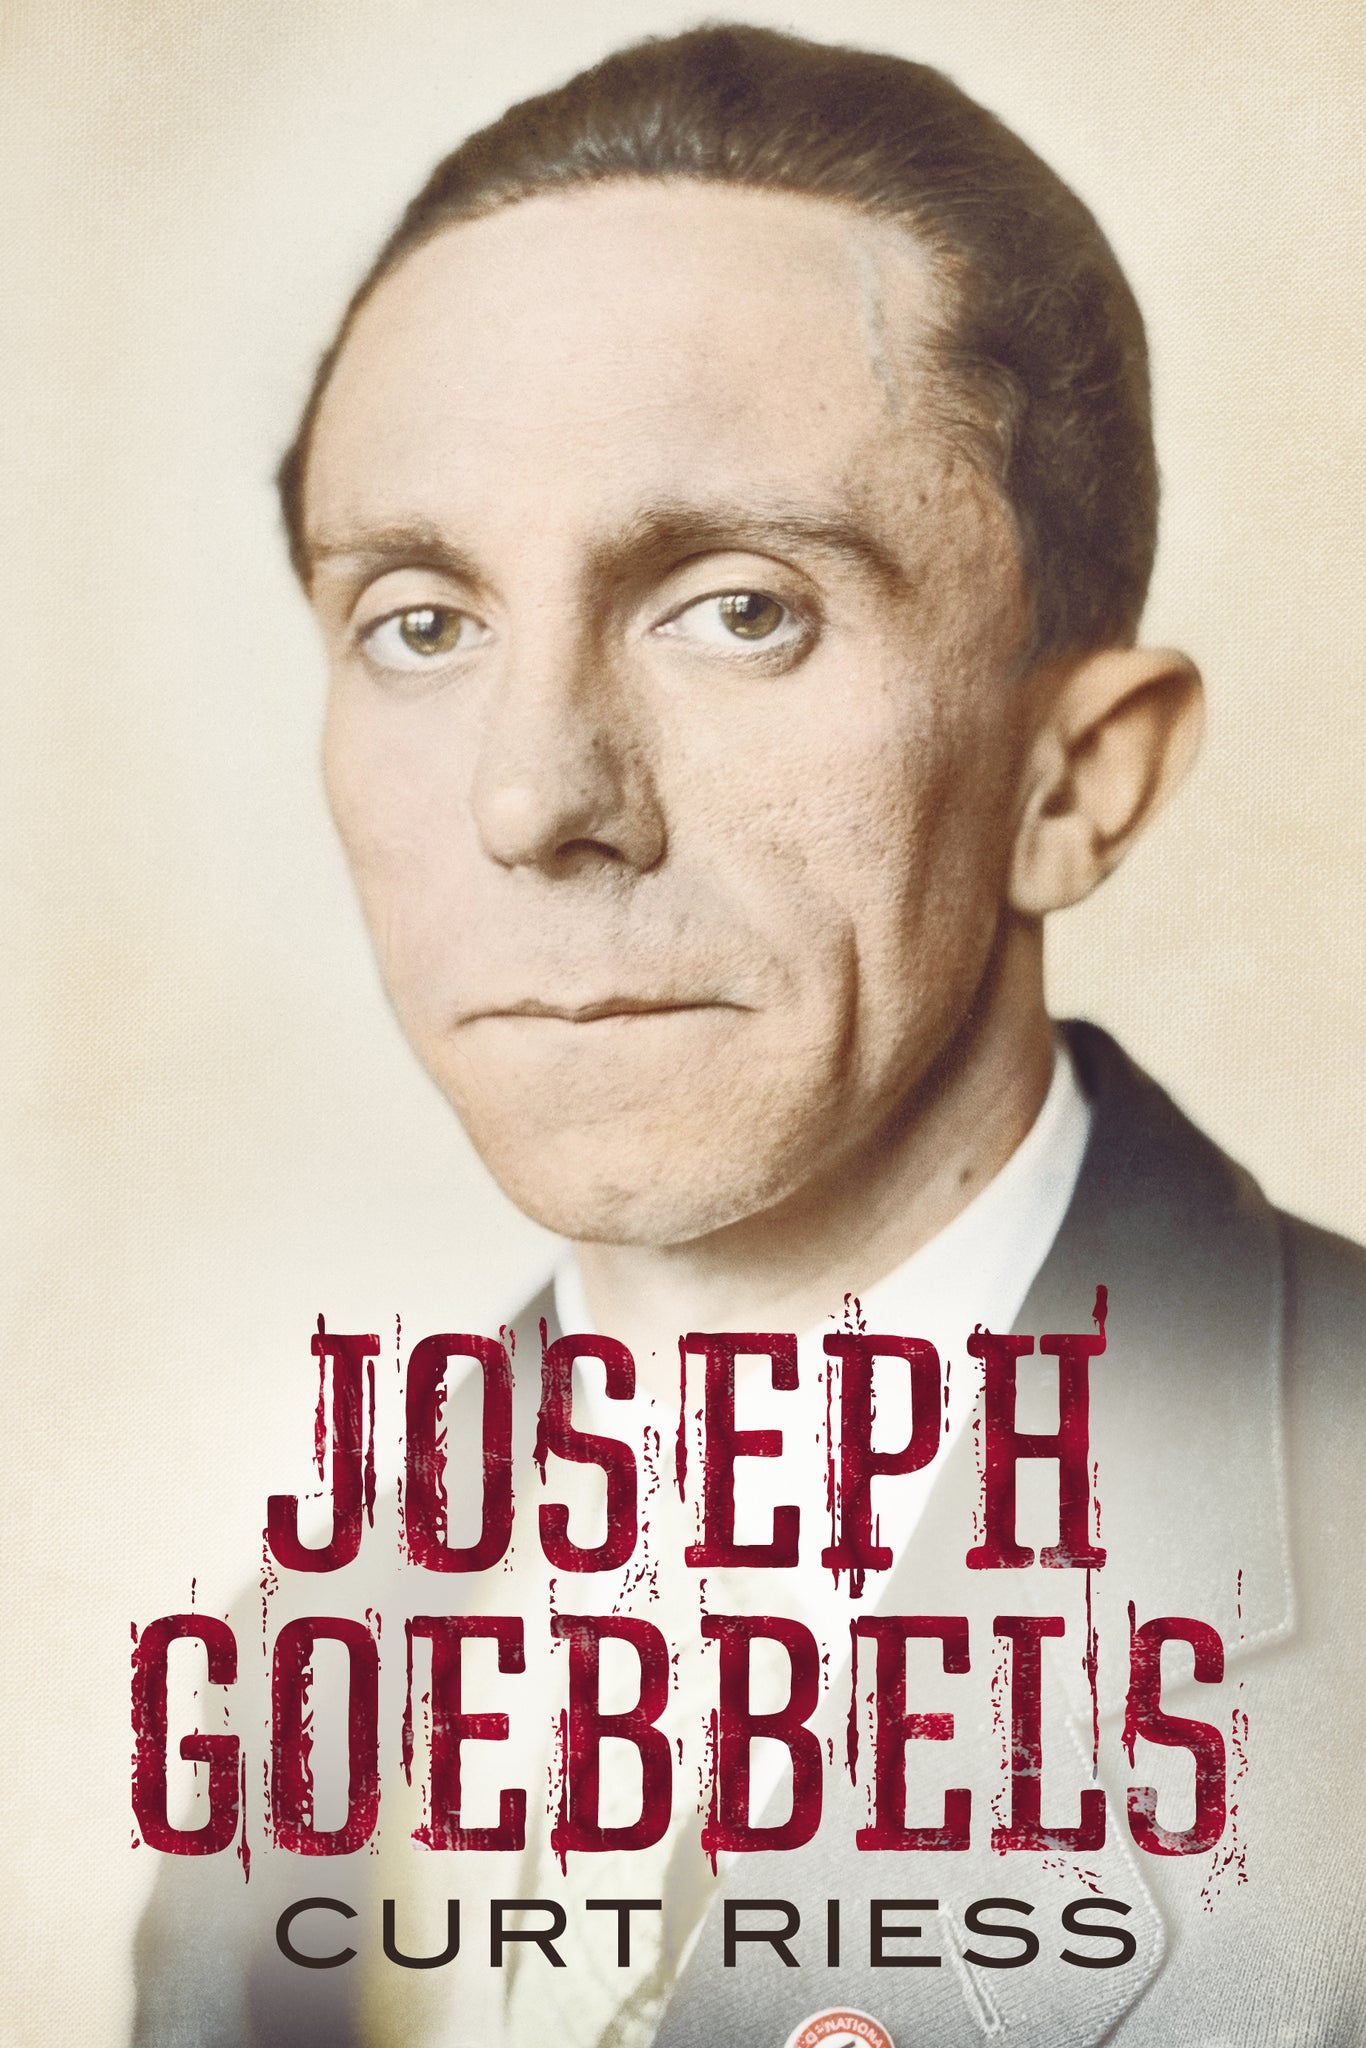 Joseph Goebbels: The Biography (paperback)